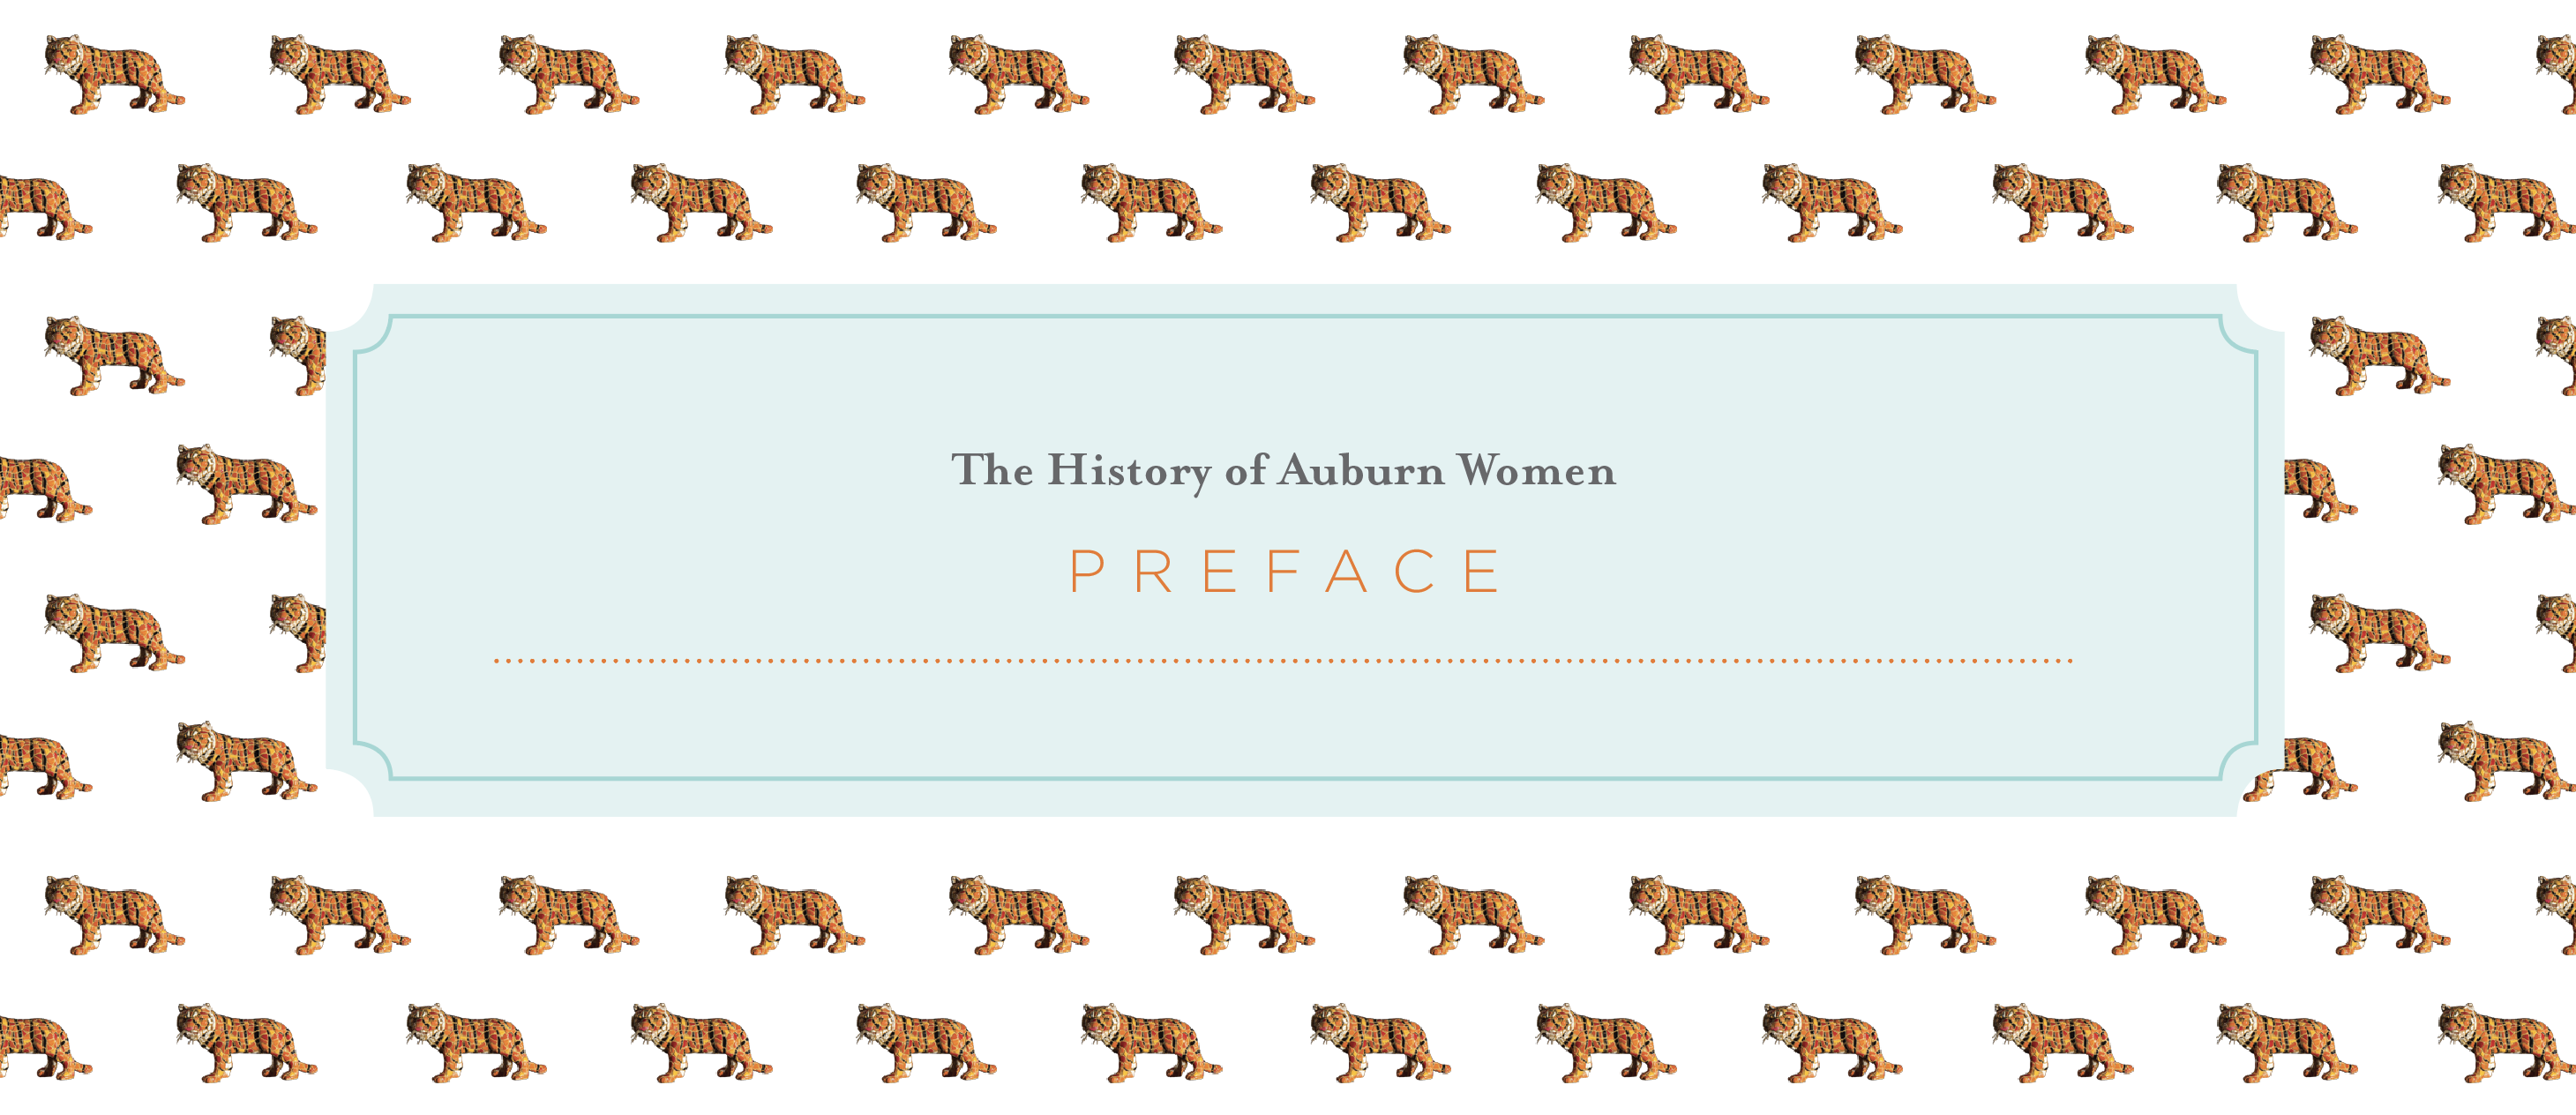 The History of Auburn Women Preface